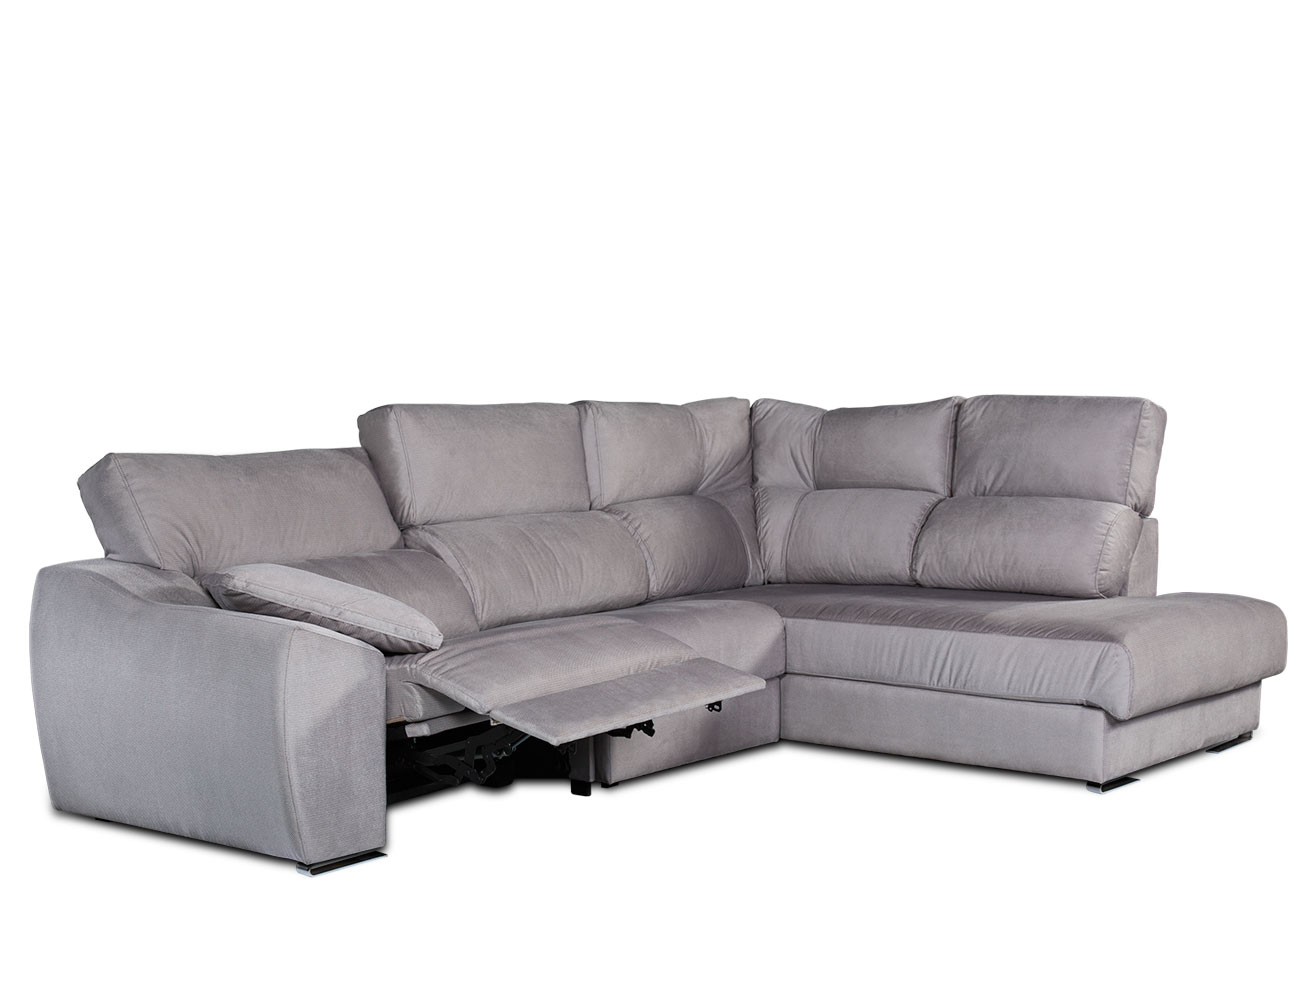 Sofa chaiselongue rincon electrico 213